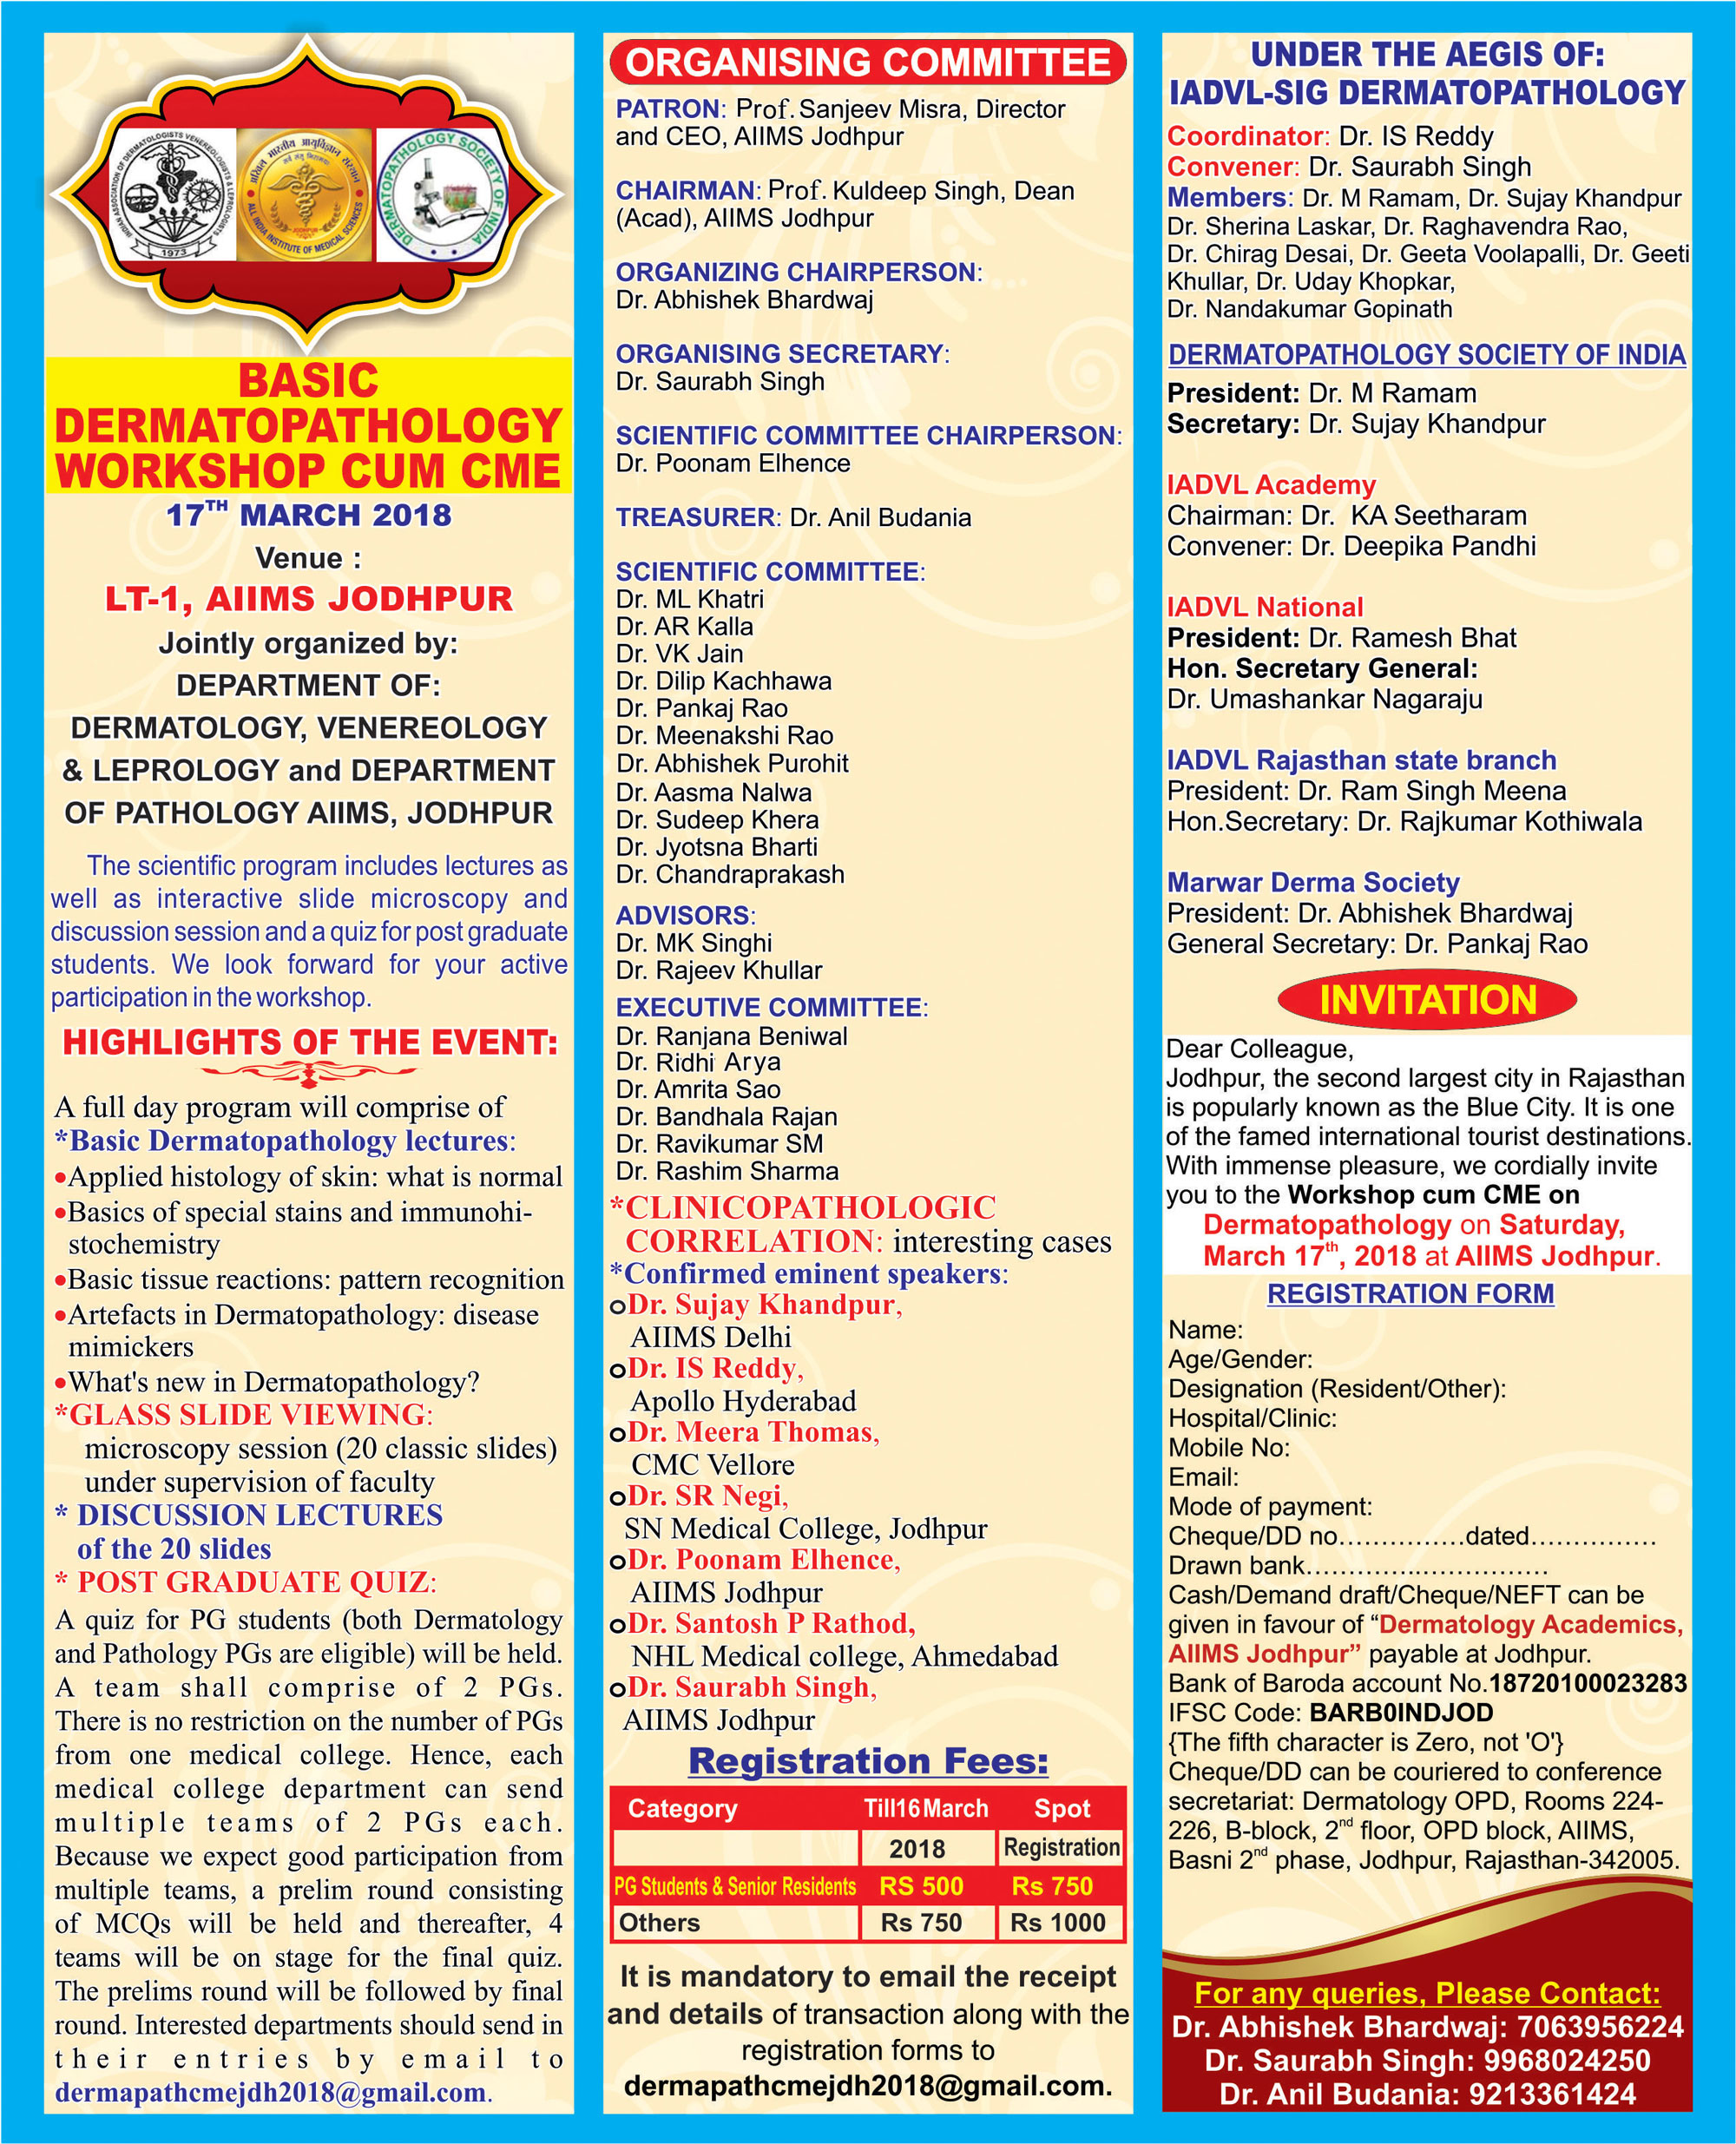 Dermatopathology Society of India Meetings